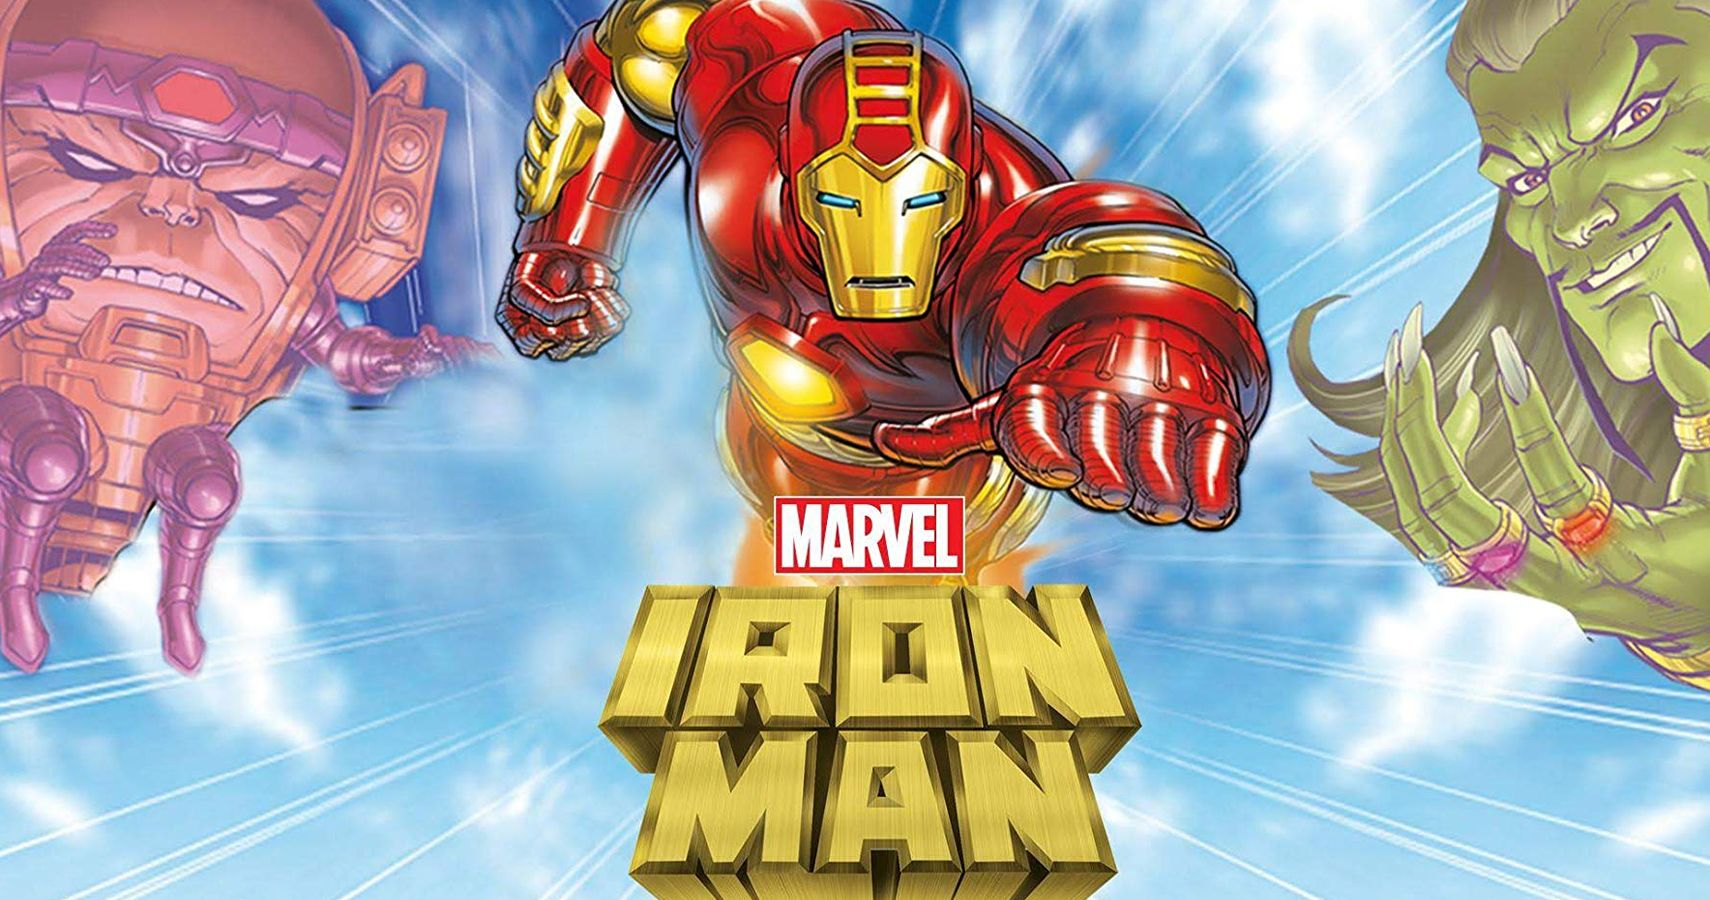 Iron-Man-10-Things-That-Make-No-Sense-About-The-90s-Animated-Series.jpg